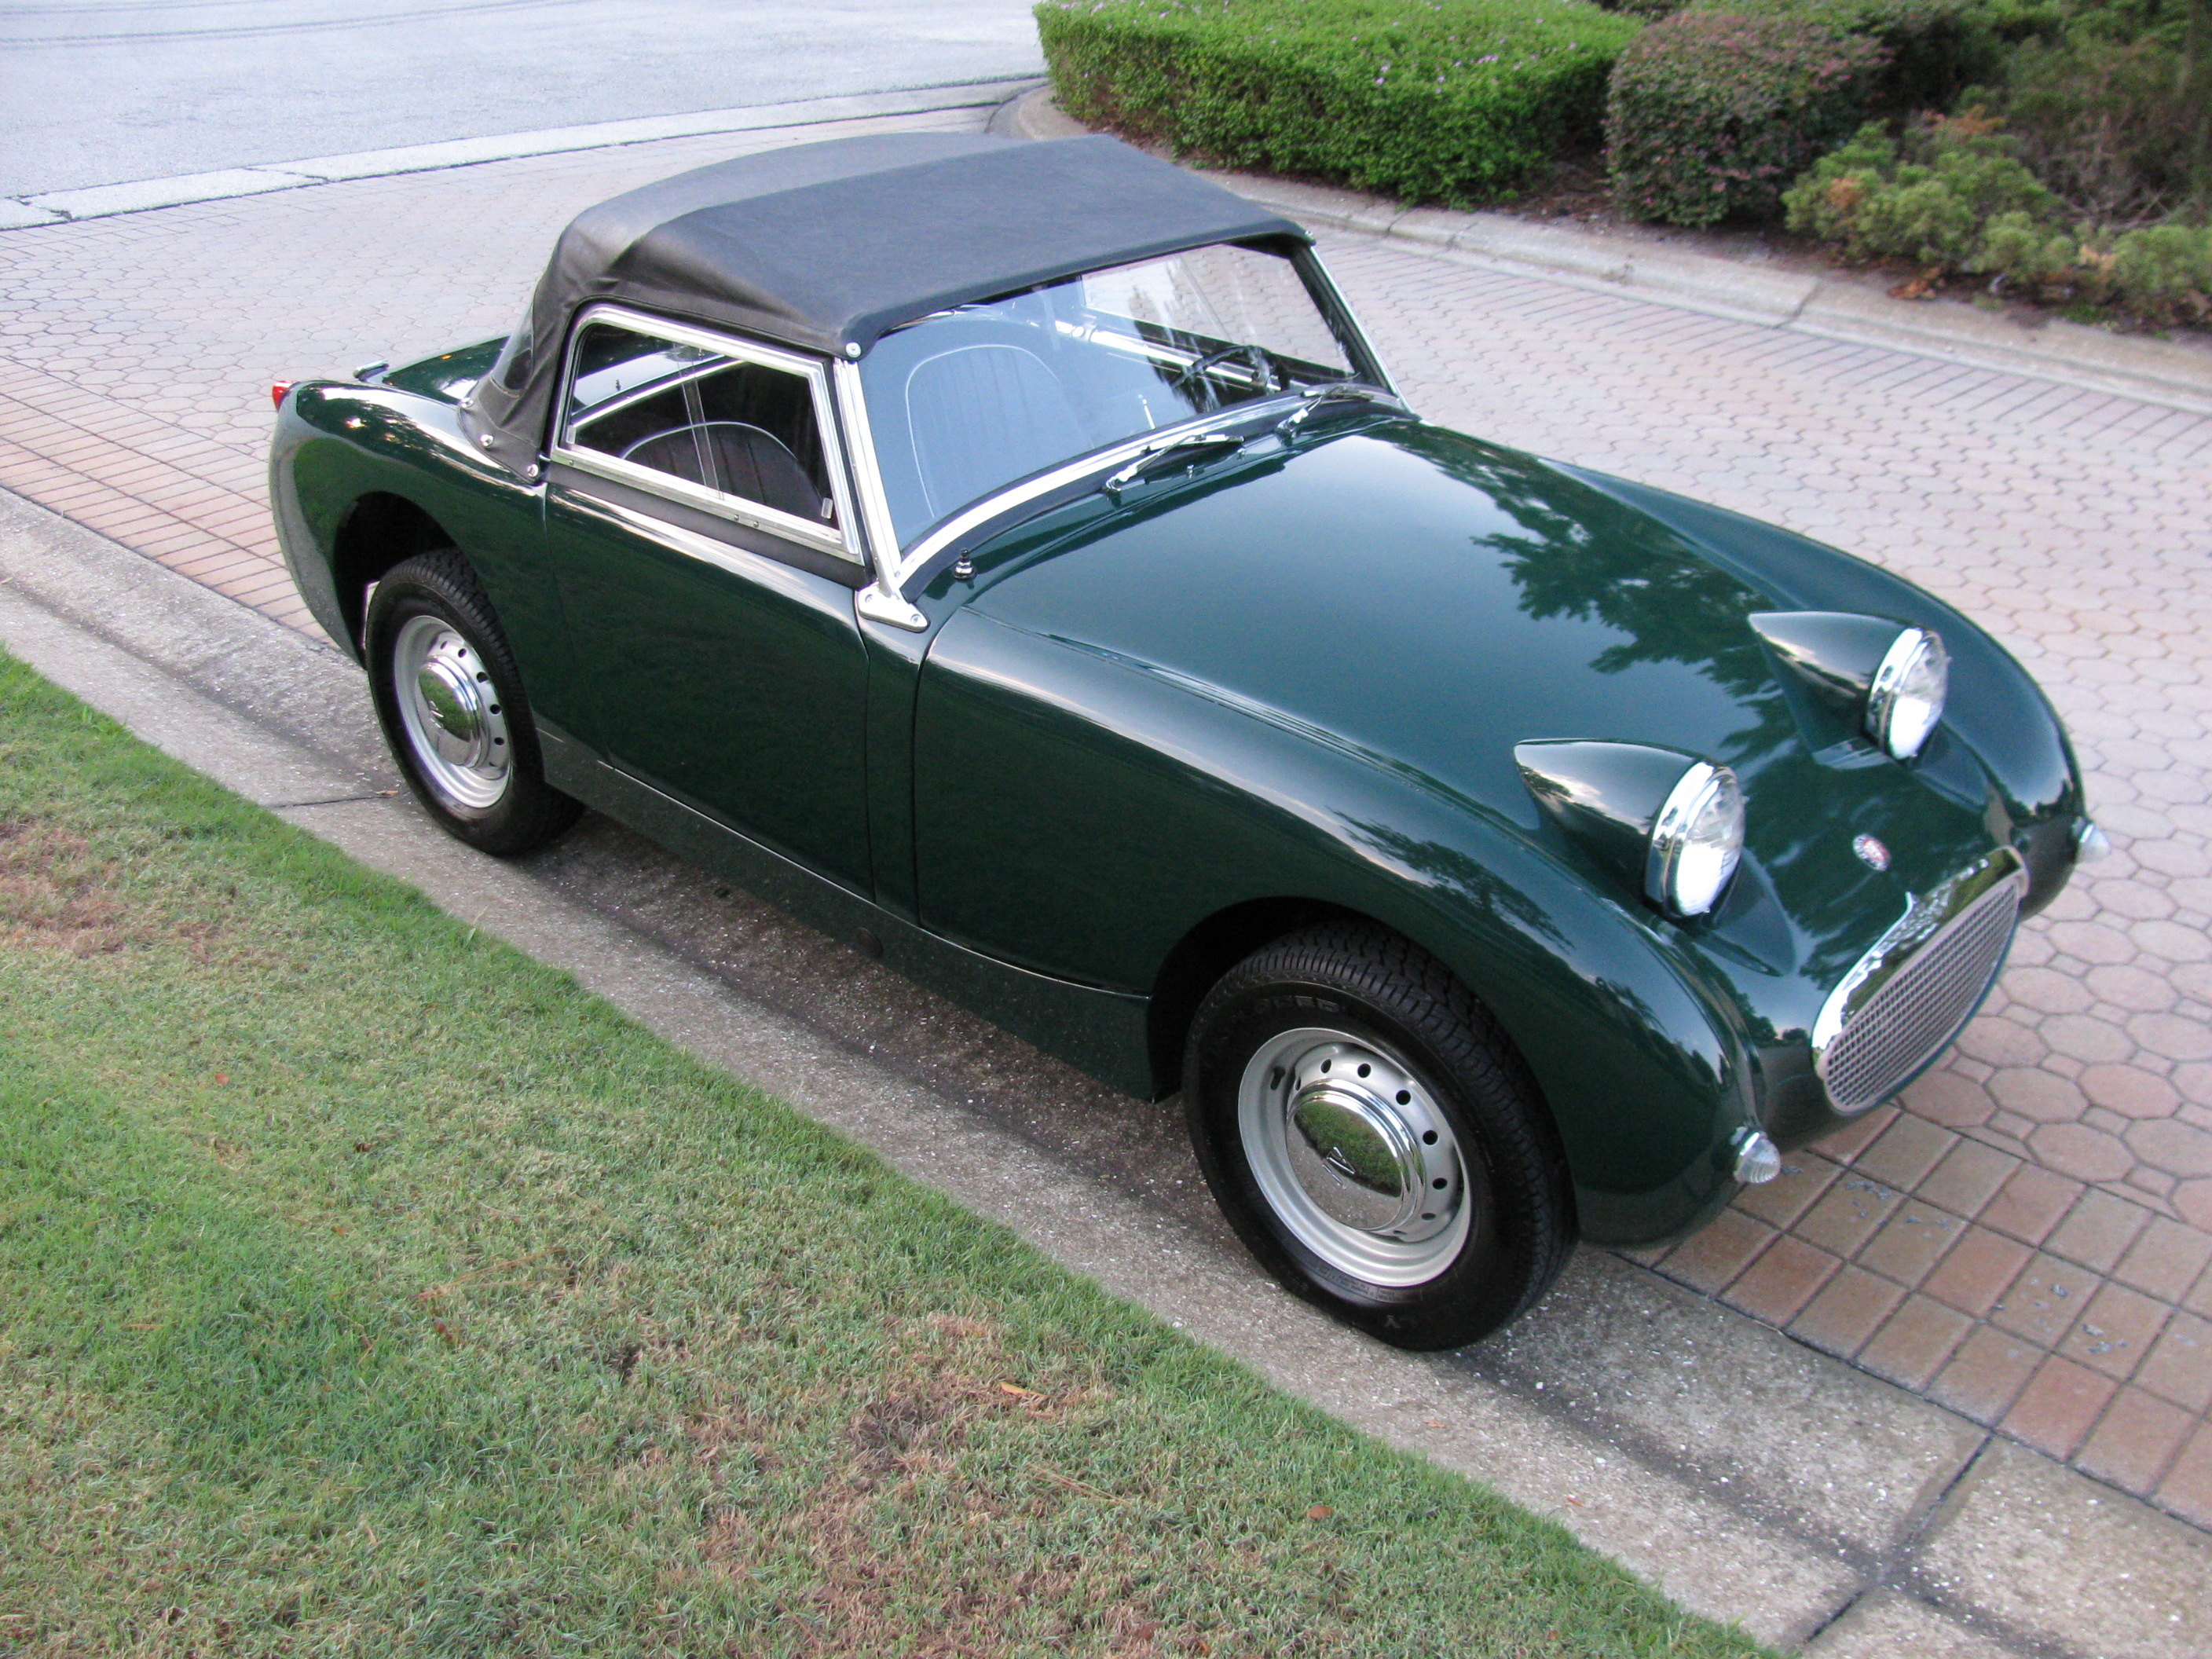 1961 Austin Healey Bugeye Sprite   SOLD    Vantage Sports Cars     1961 Austin Healey Bugeye Sprite     SOLD